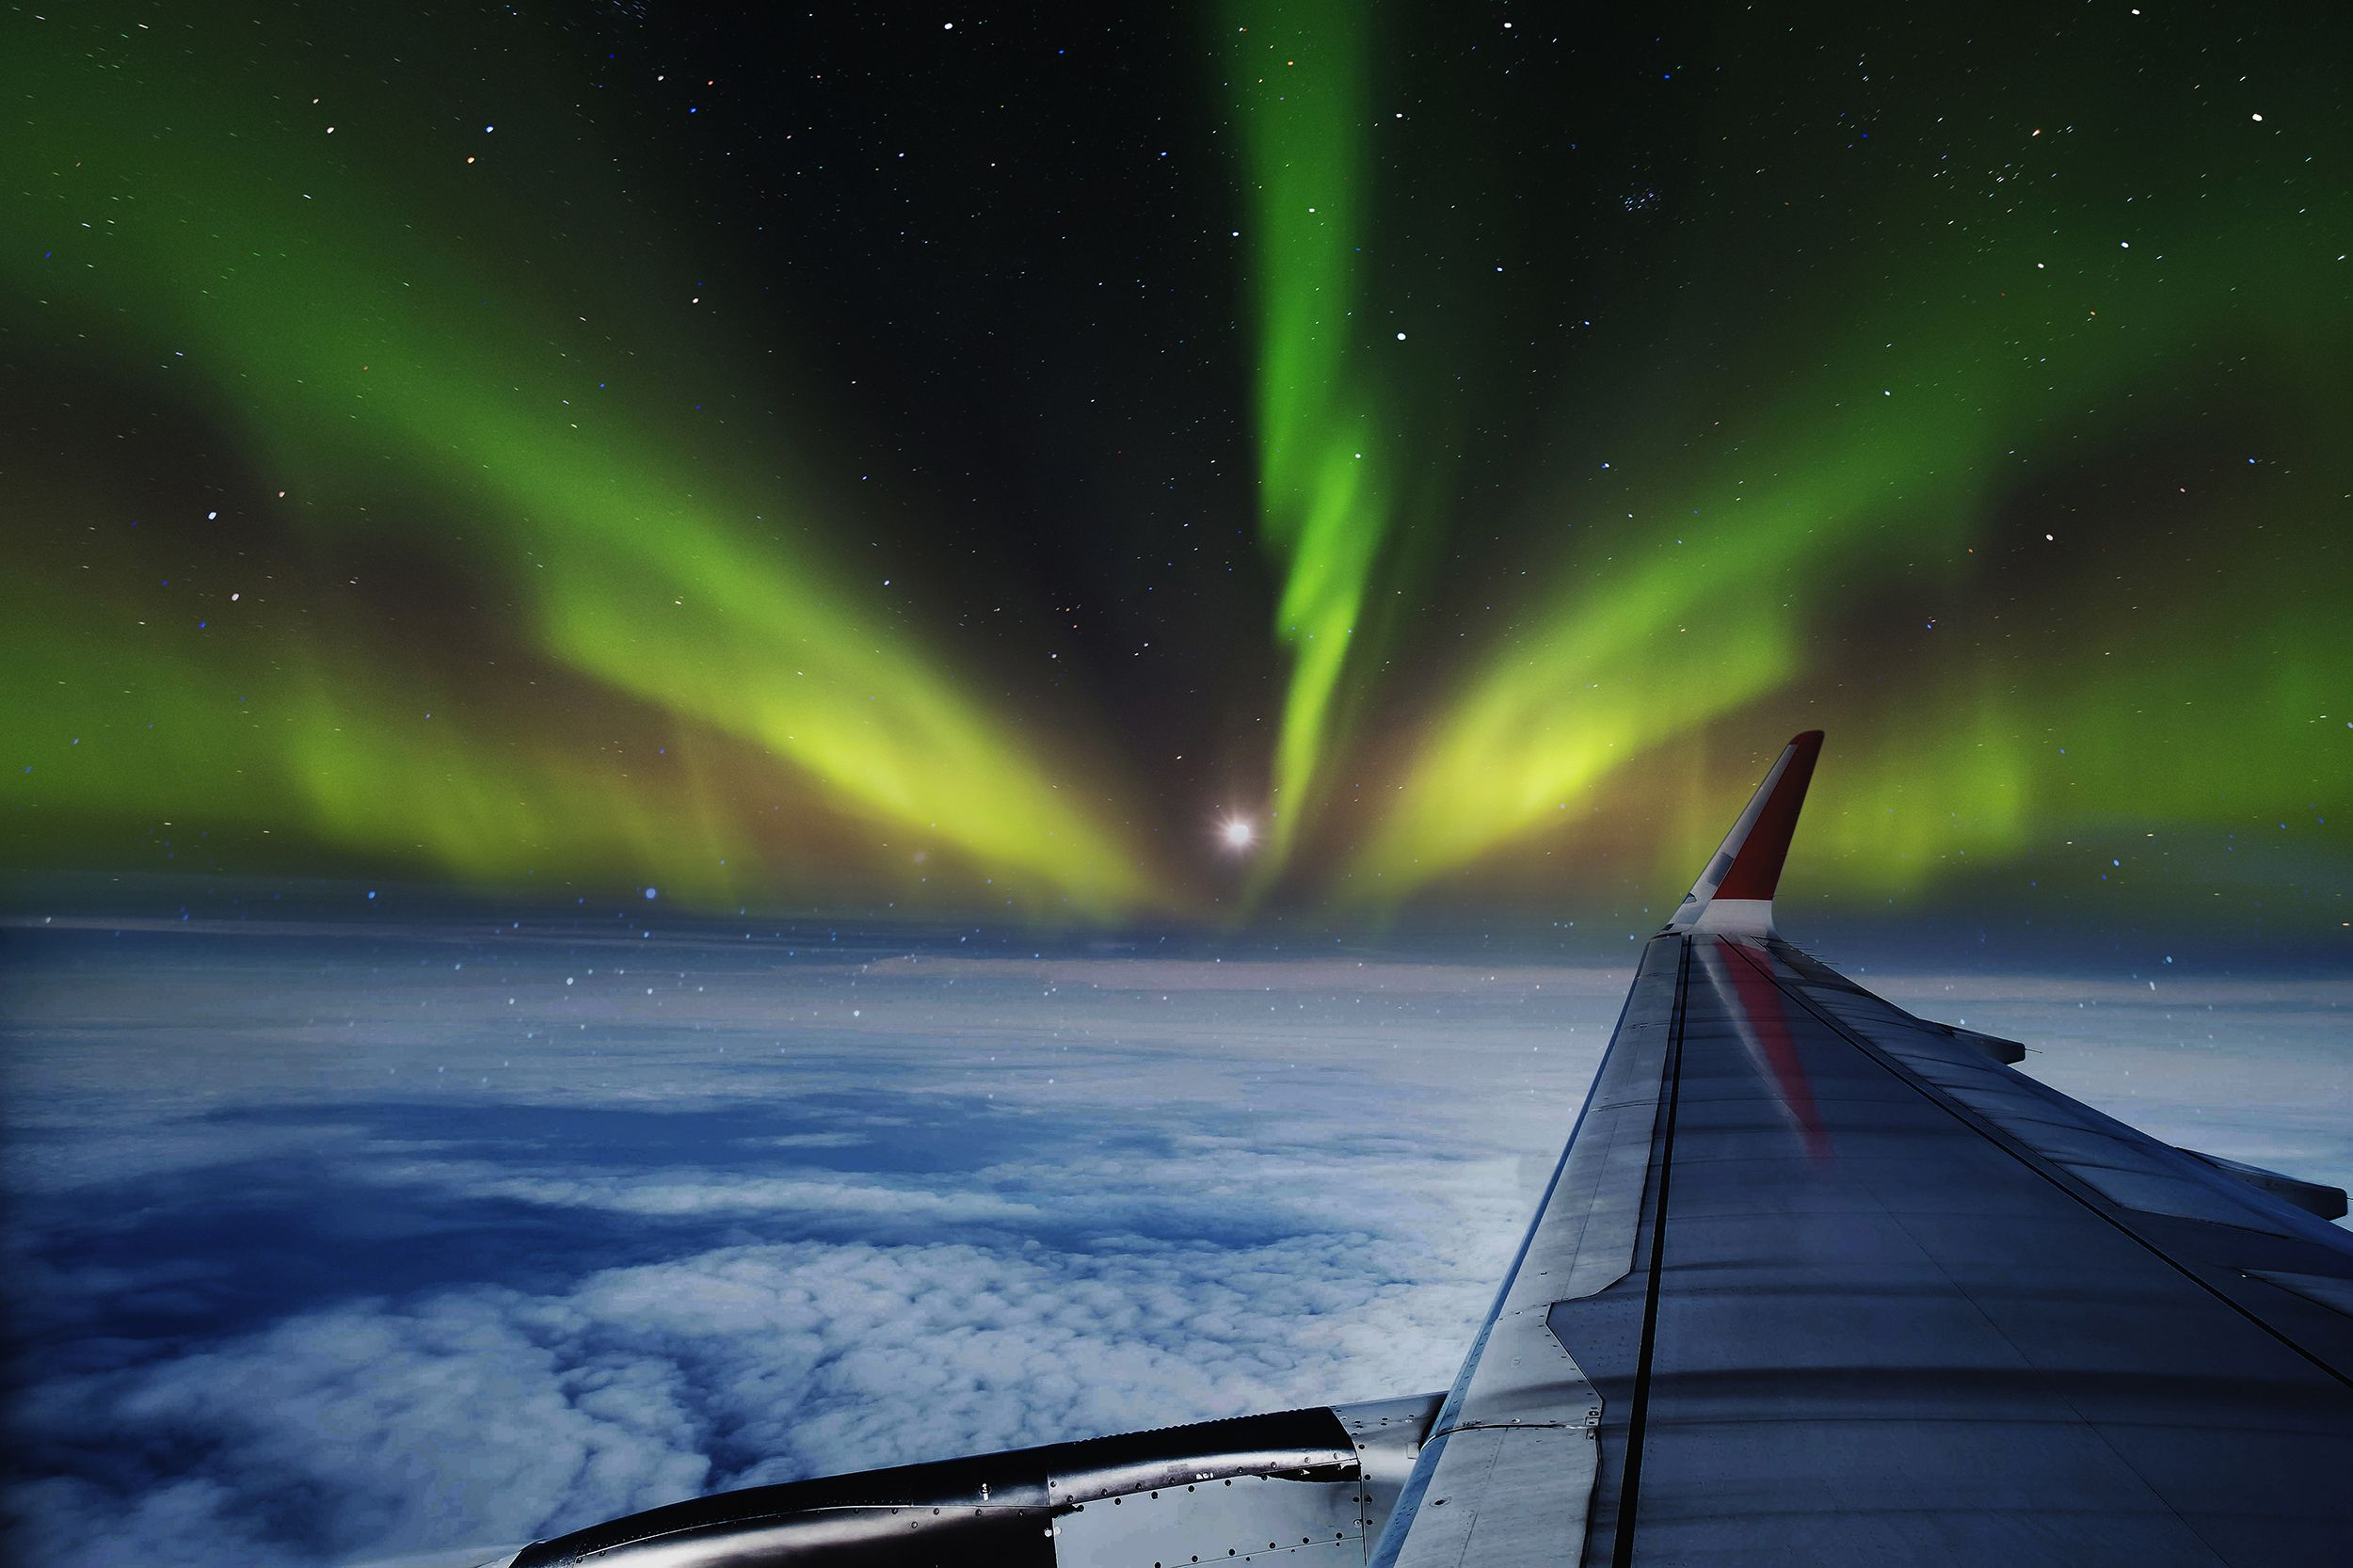 This is the coolest way to see the Northern Lights this winter